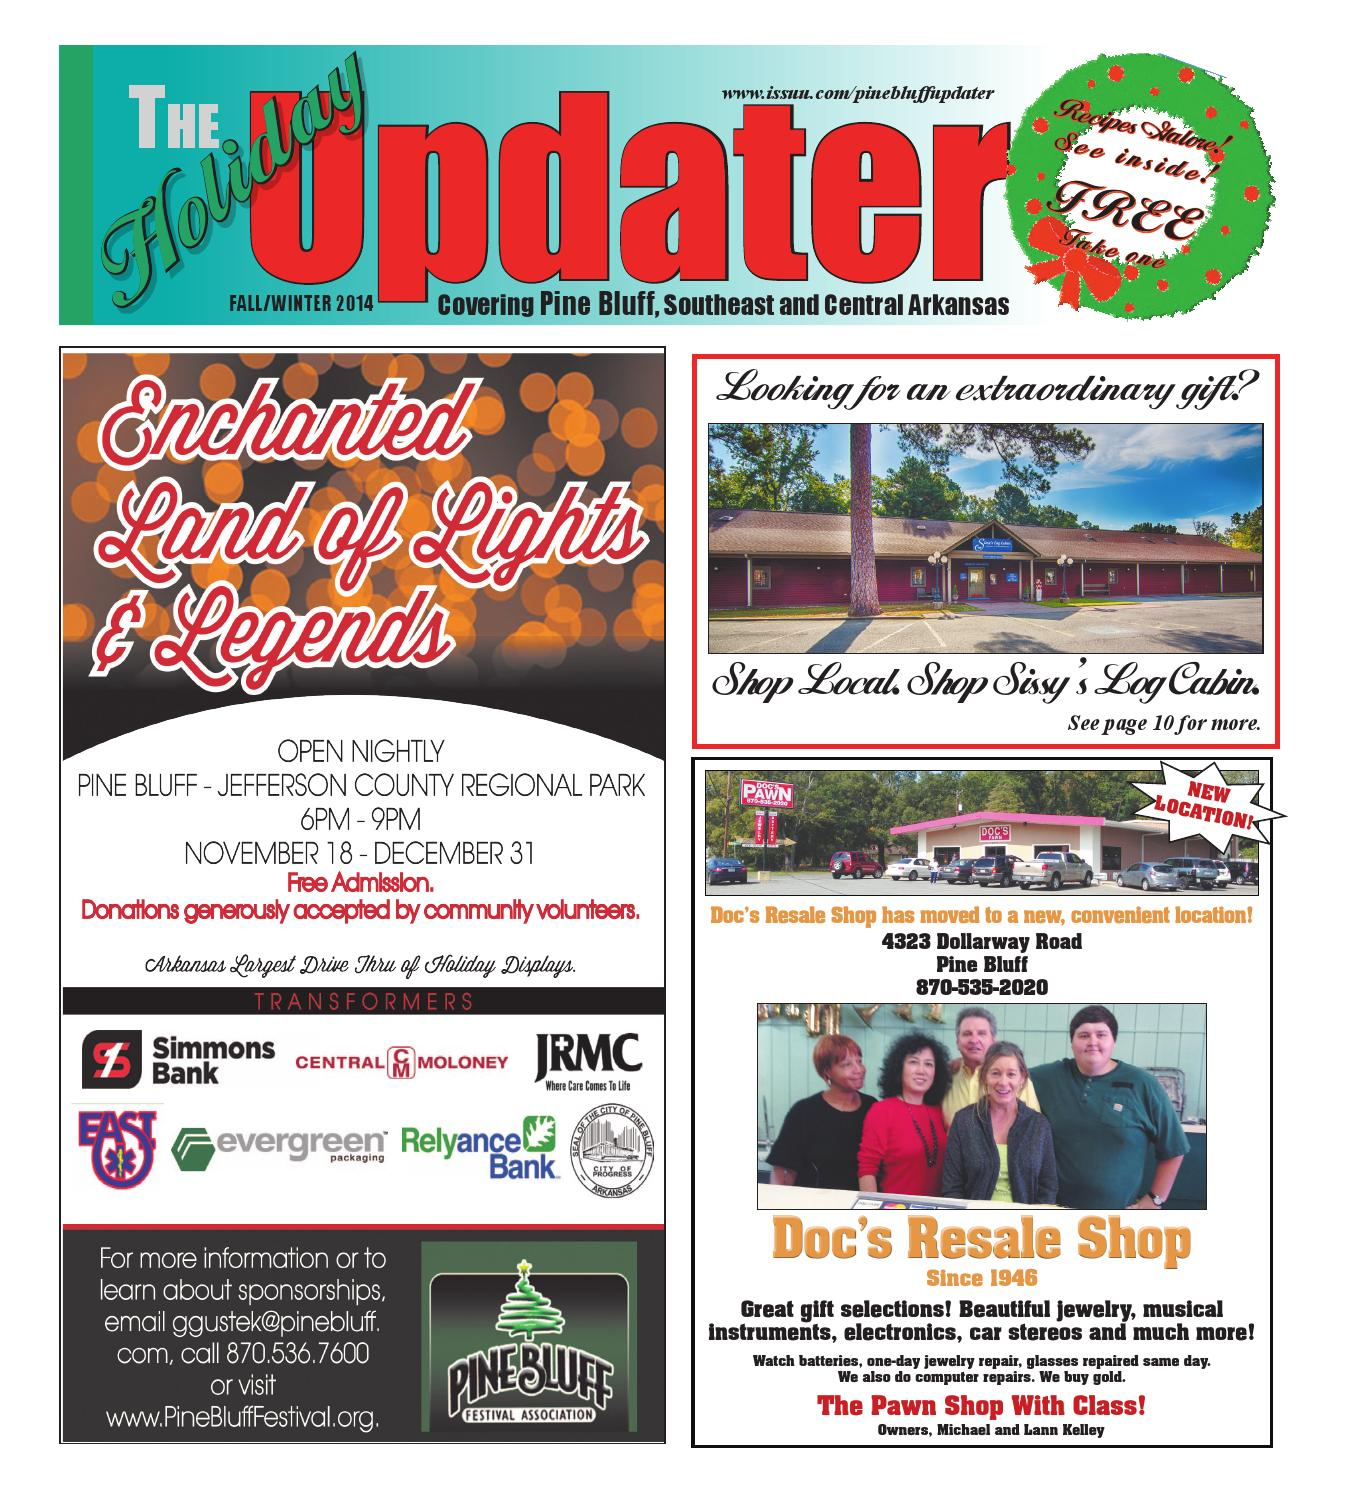 Holiday Updaterthe Updater - Issuu Intended For When Is Spring Break 2020 In Pine Bluff